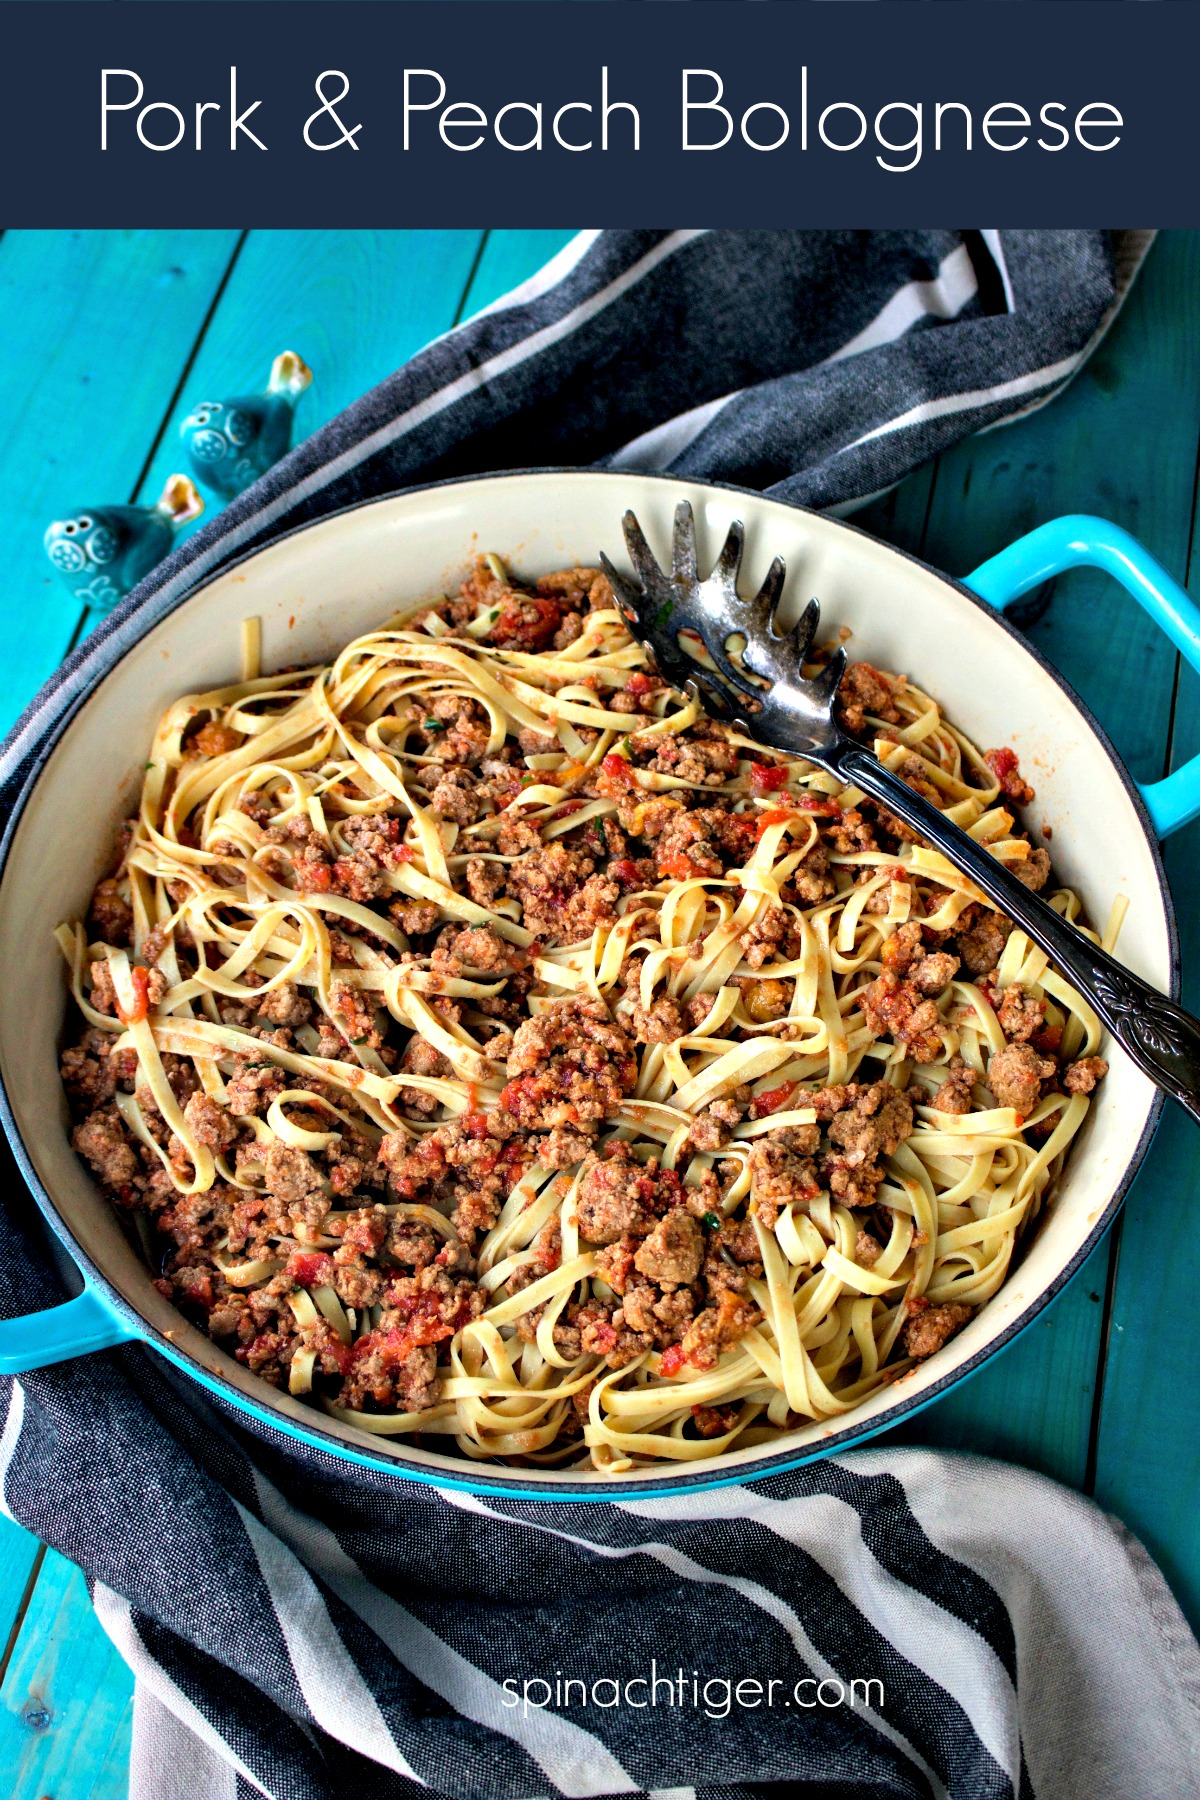 Pork and Peach Bolognese from Spinach Tiger. #Italianfood #pasta #bolognese #pork #peaches